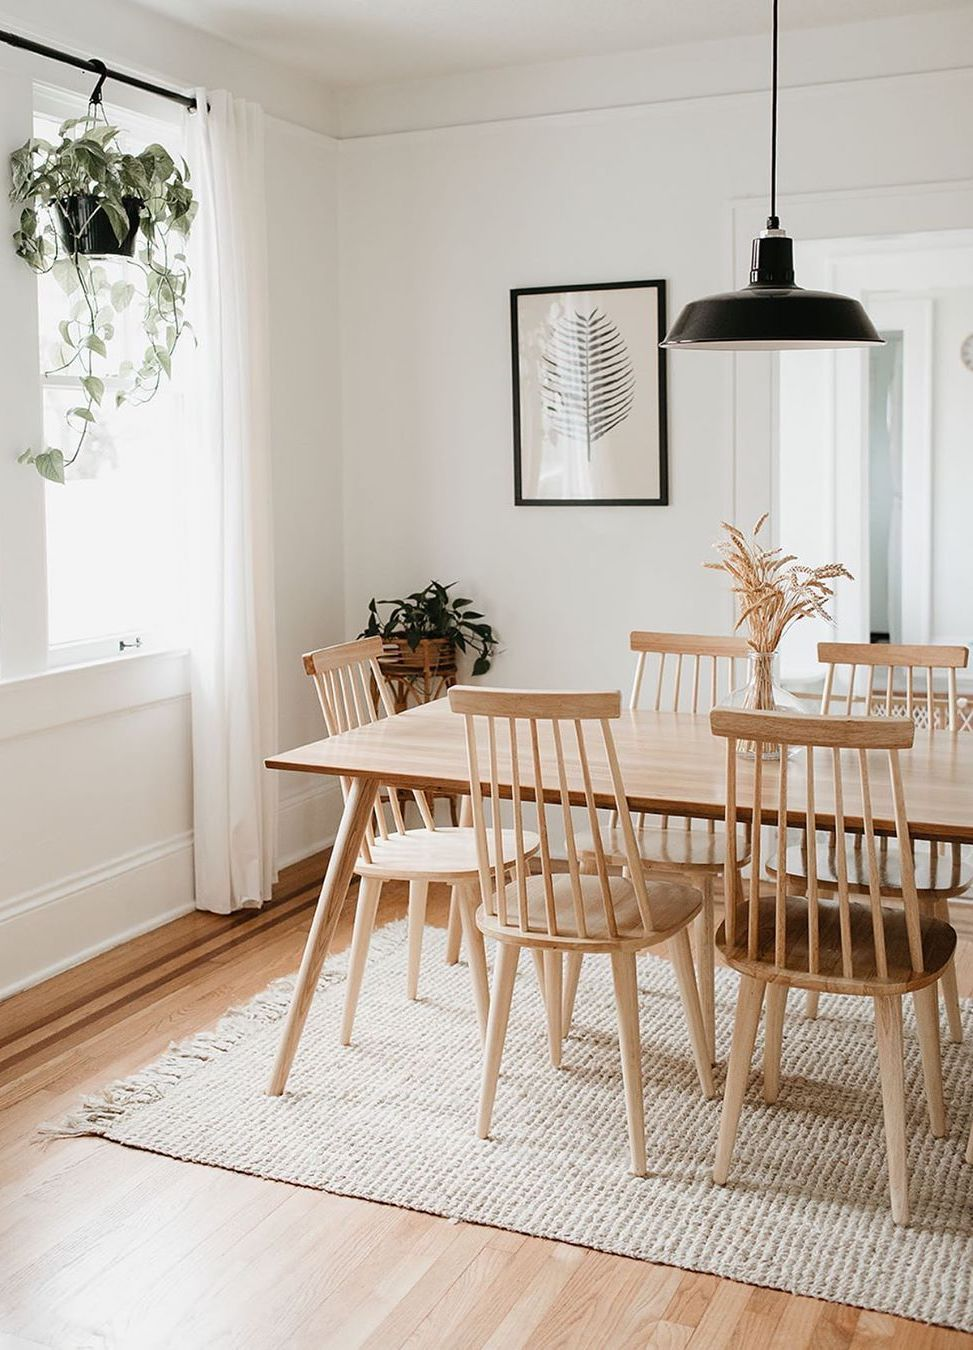 Choosing The Right Dining Chairs For Your Dining Room Table Is No Easy Decision If You Host Wood Dining Room Solid Wood Dining Chairs Dining Room Inspiration